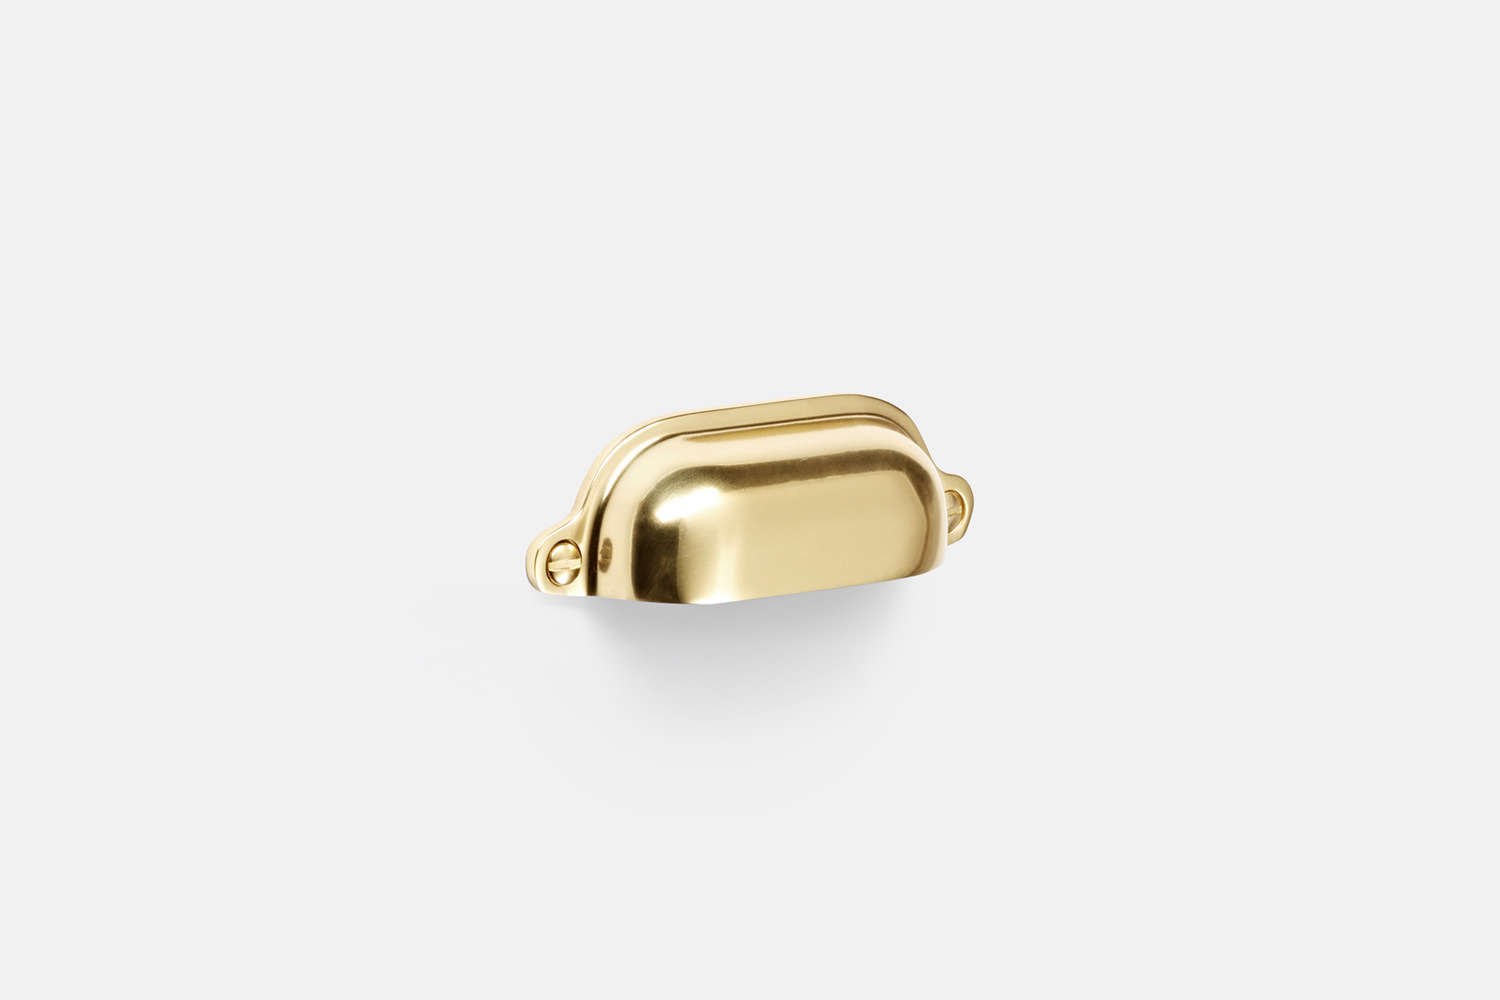 10 Easy Pieces Favorite Cabinet Pulls From Rejuvenation, the Vernon Bin Pull in Aged Brass is \$\10. The pull comes in a range of finishes.